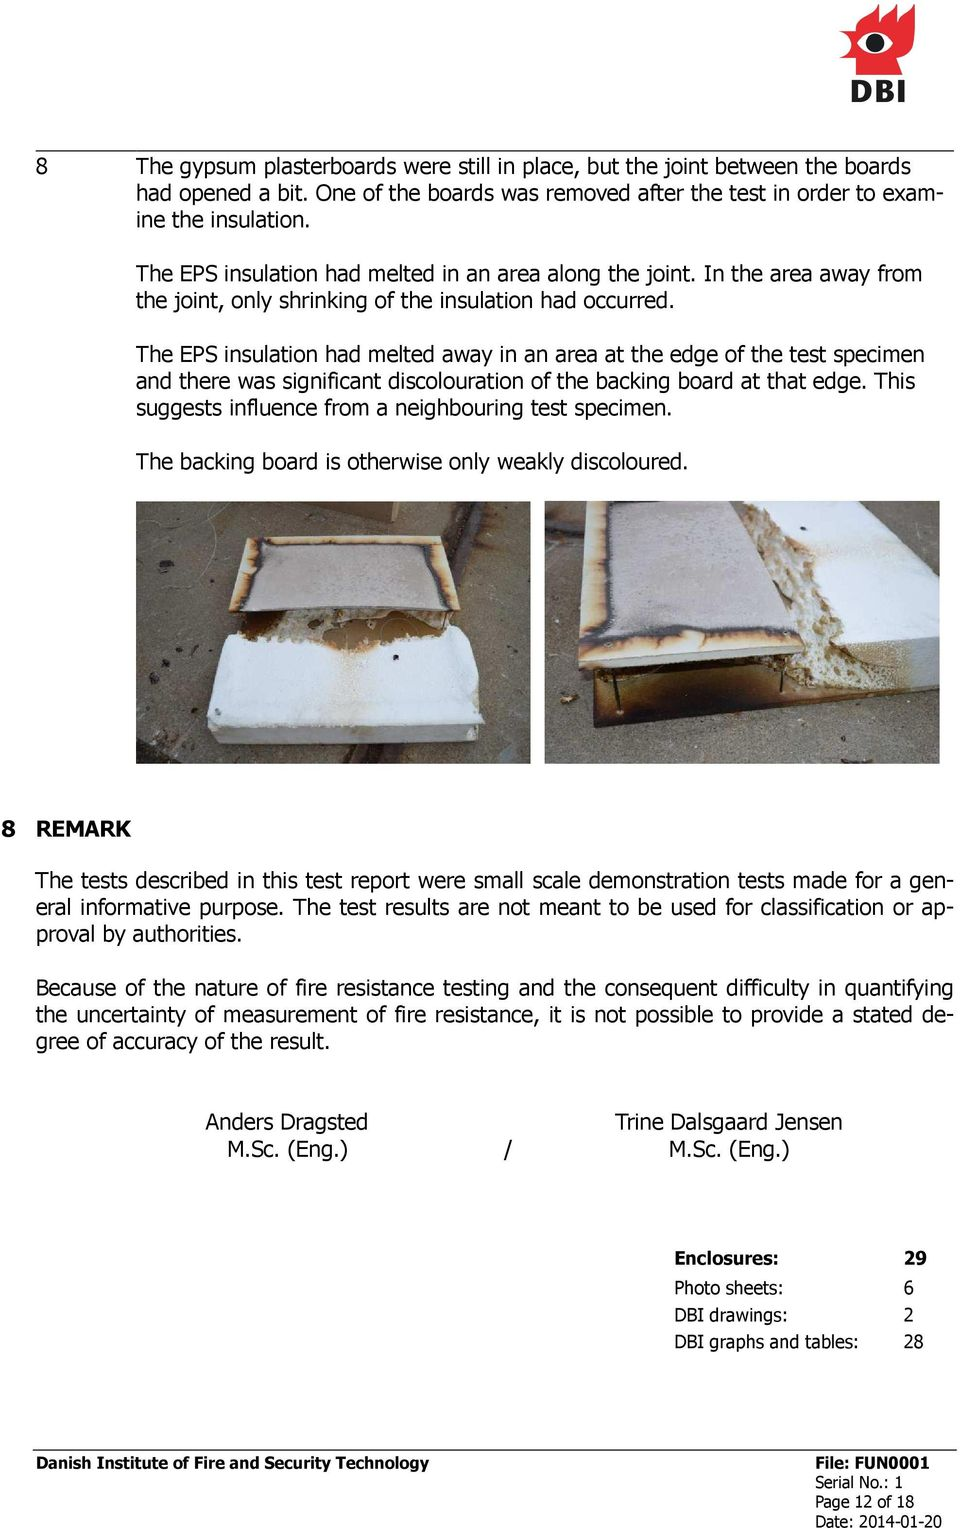 The EPS insulation had melted away in an area at the edge of the test specimen and there was significant discolouration of the backing board at that edge.